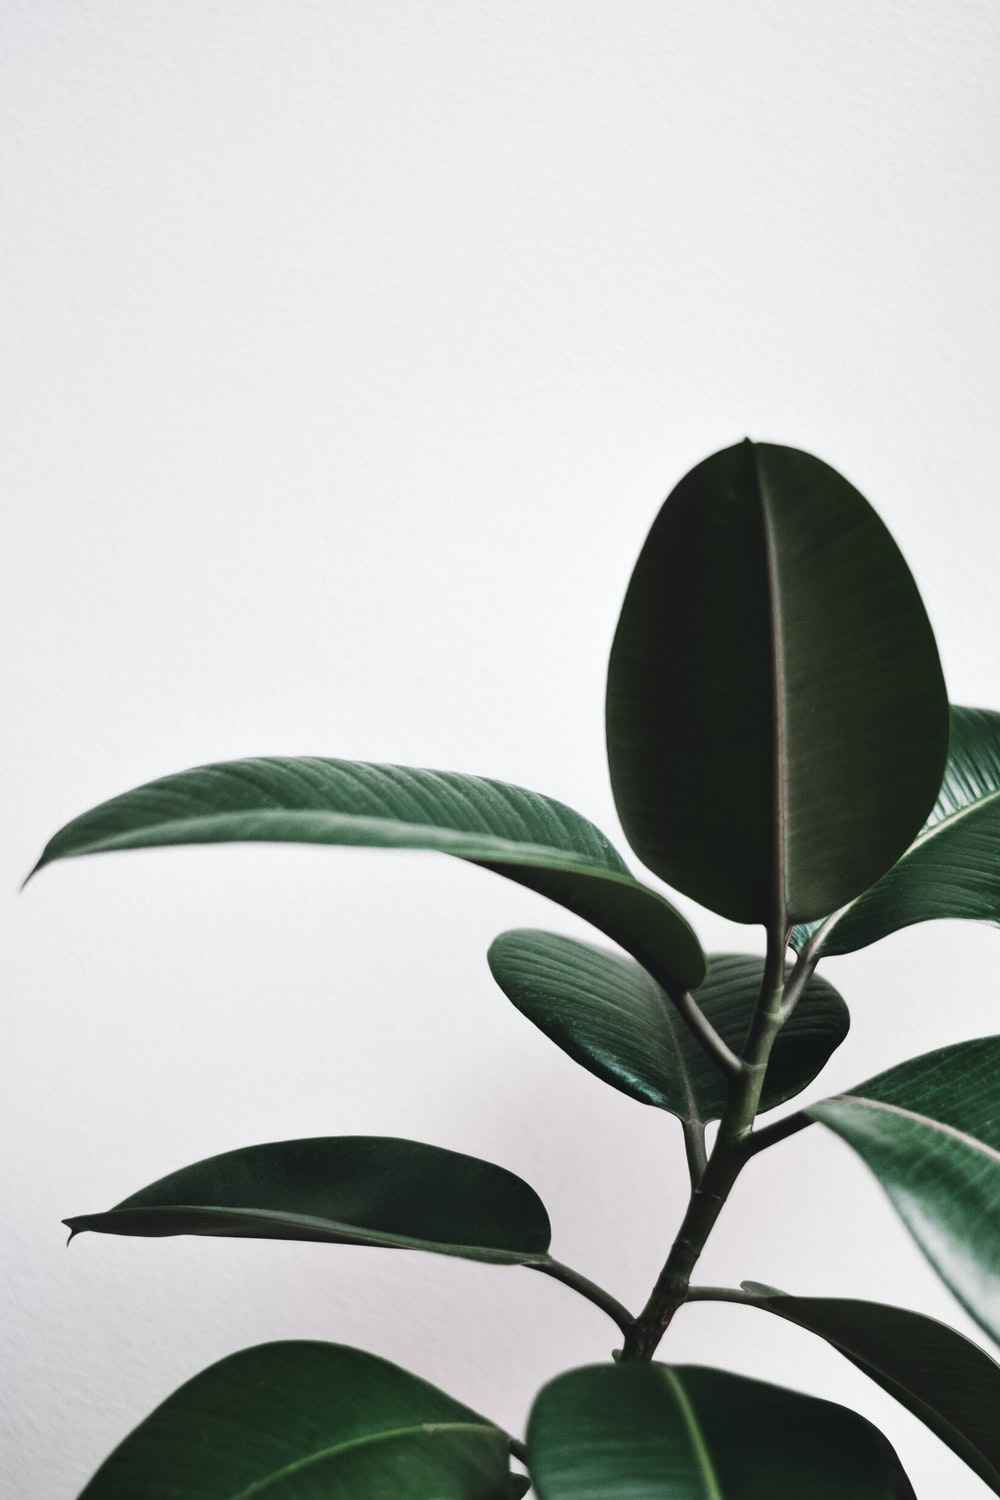 green leaf plant in white background